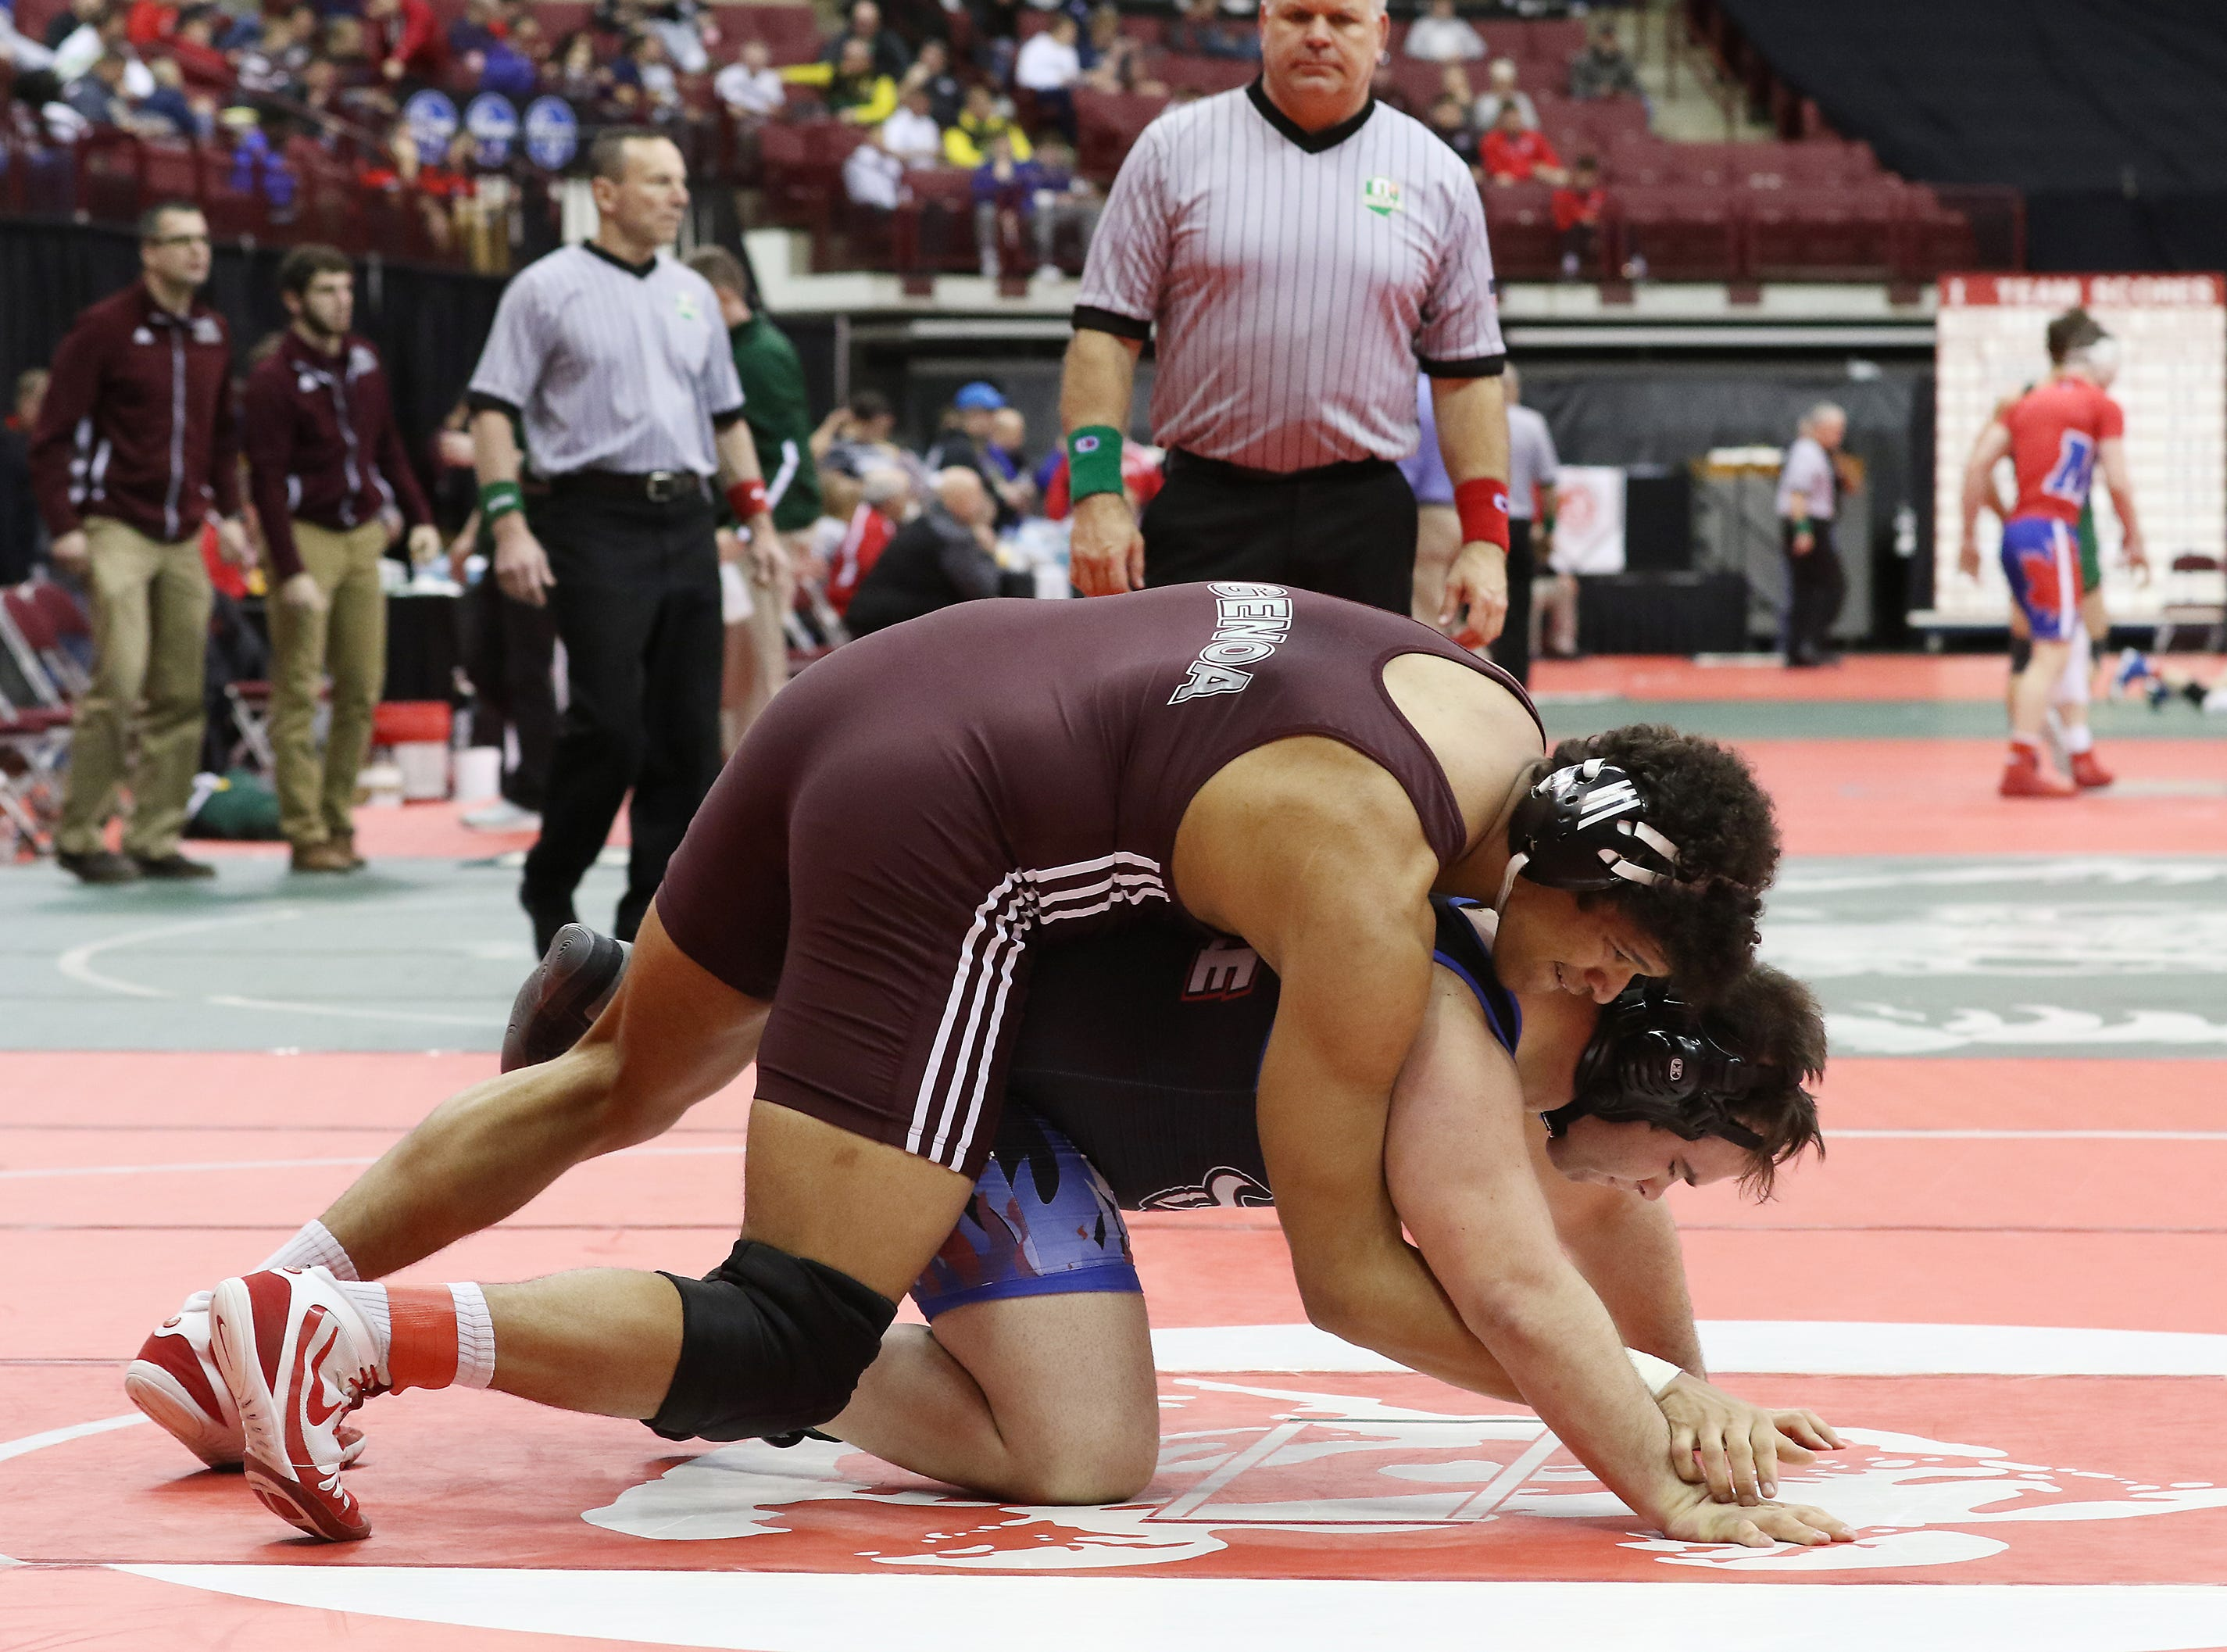 Genoa's Noah Kock wrestles Danville's Dylan Wilson in the 285 pound weight class during the Division III consolations at the state wrestling tournament on Friday.